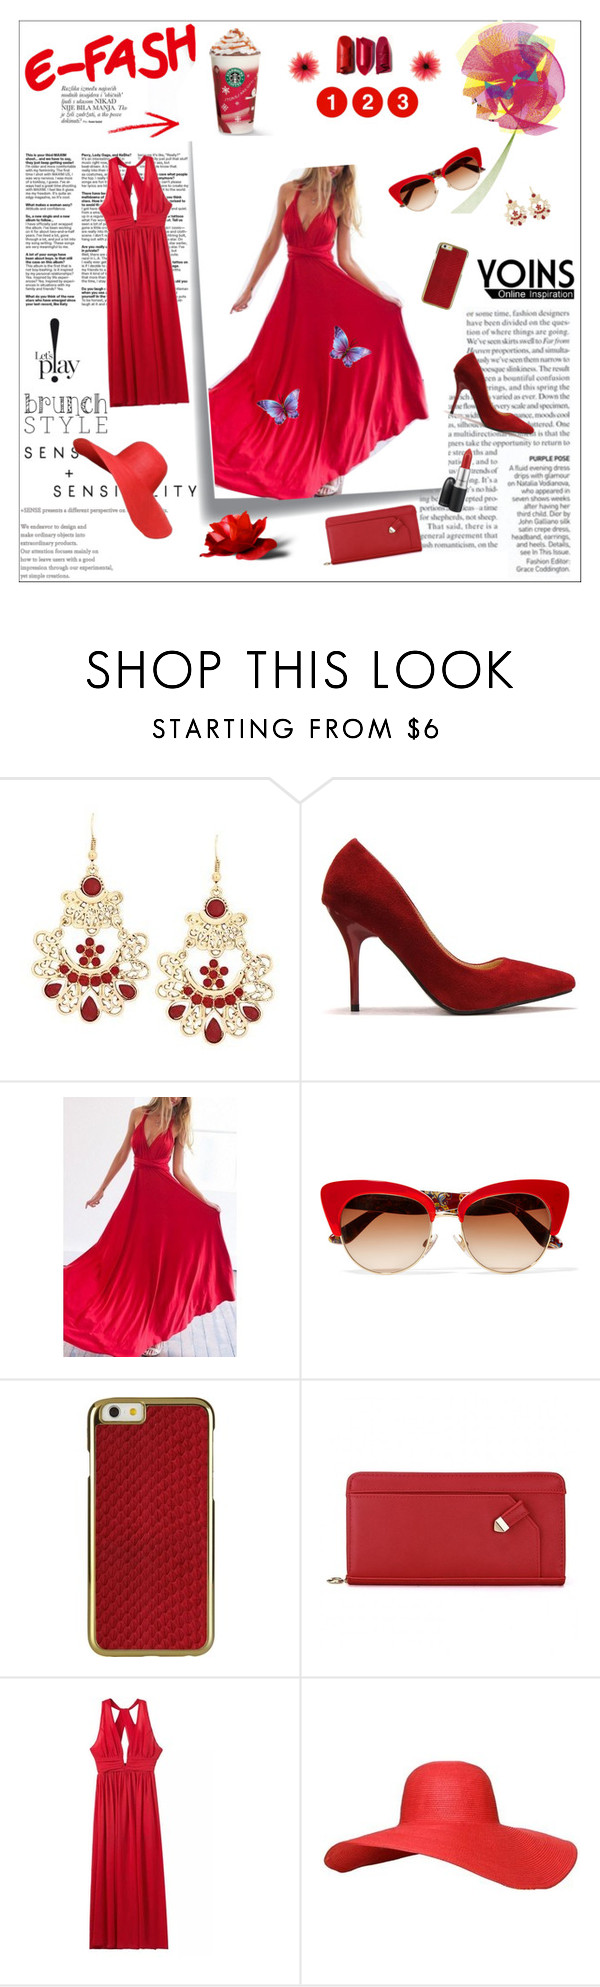 """""""Flame Red Skirt"""" by loveyoins ❤ liked on Polyvore featuring Post-It and Dolce&Gabbana"""